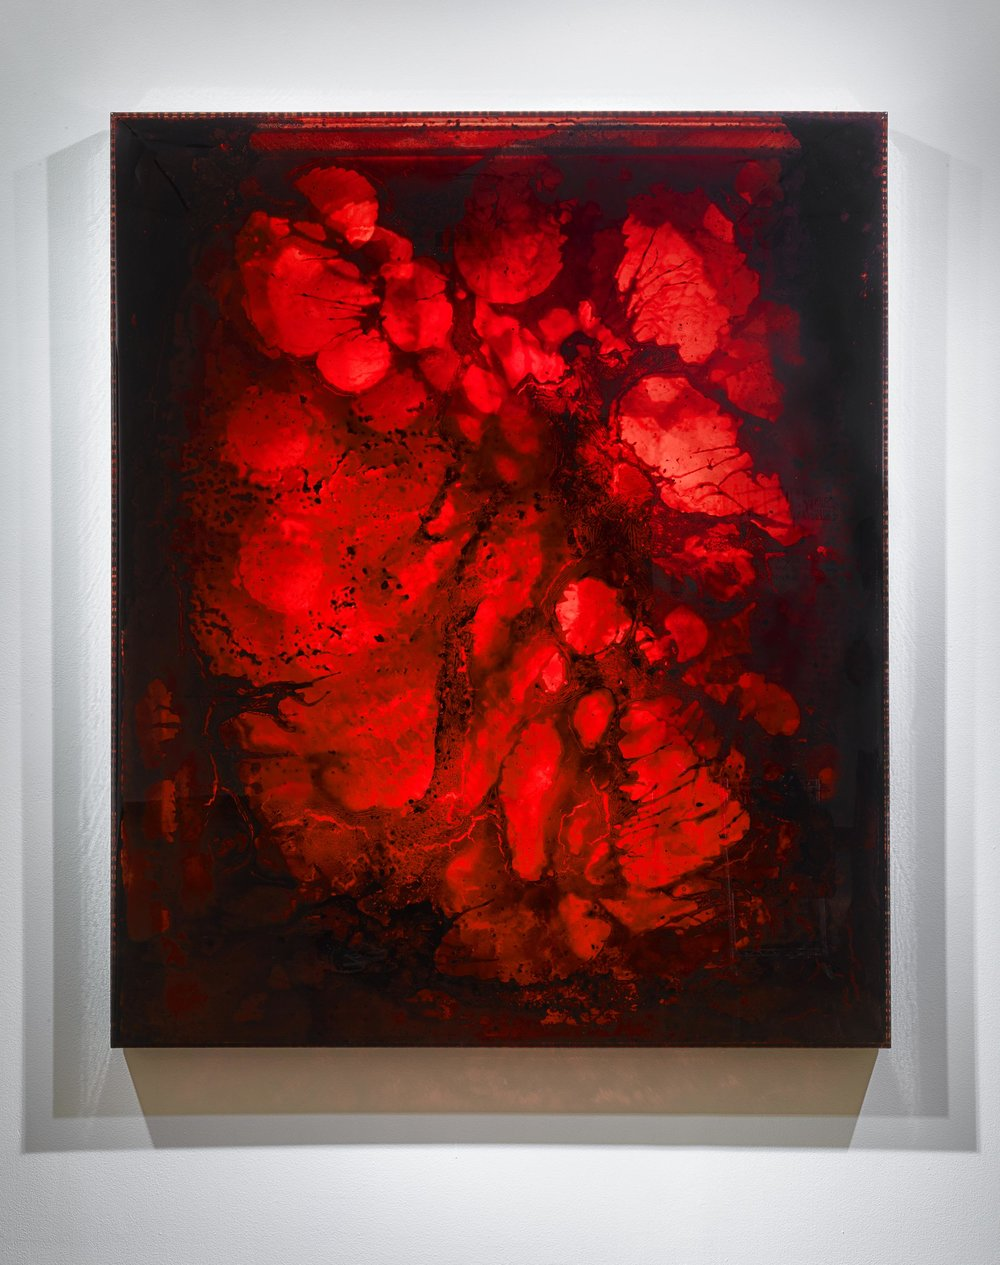 "LIFE FORCE 2012-2, 2012 72 x 60 x 3"" blood, copper, preserved on plexiglass, UV resin"